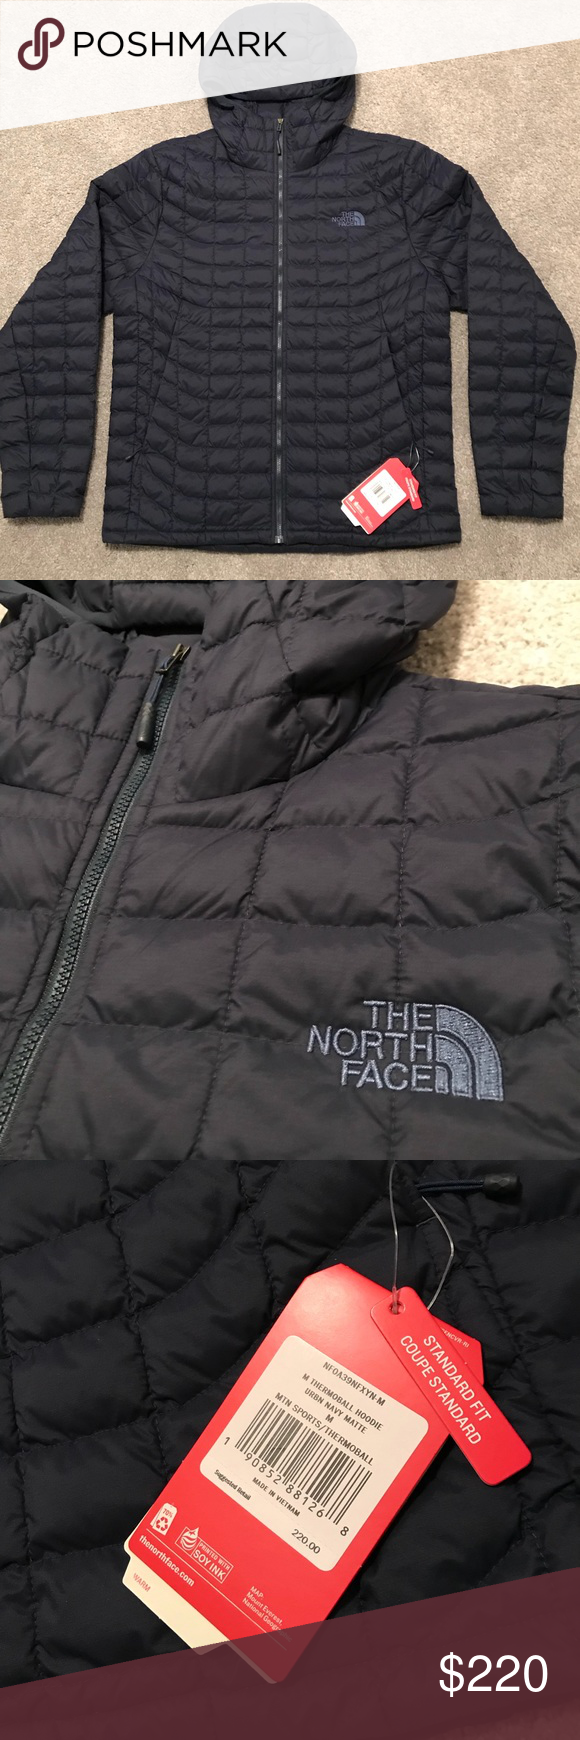 The North Face Thermoball Hoodie M S Medium Hoodies Clothes Design The North Face [ 1740 x 580 Pixel ]